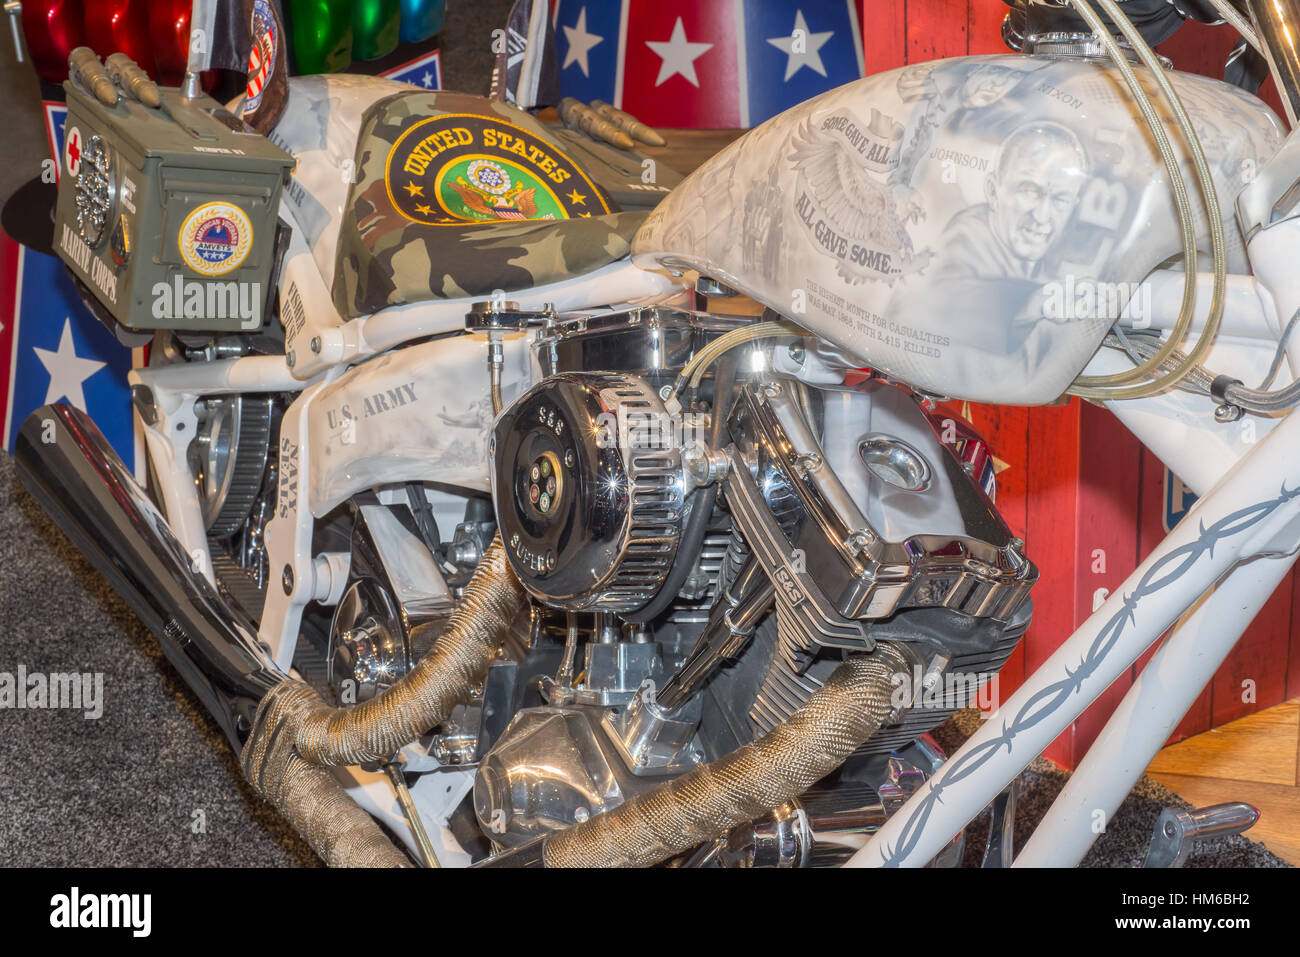 Vietnam tribute motorcycle with presidents Nixon and Johnson at SEMA. - Stock Image